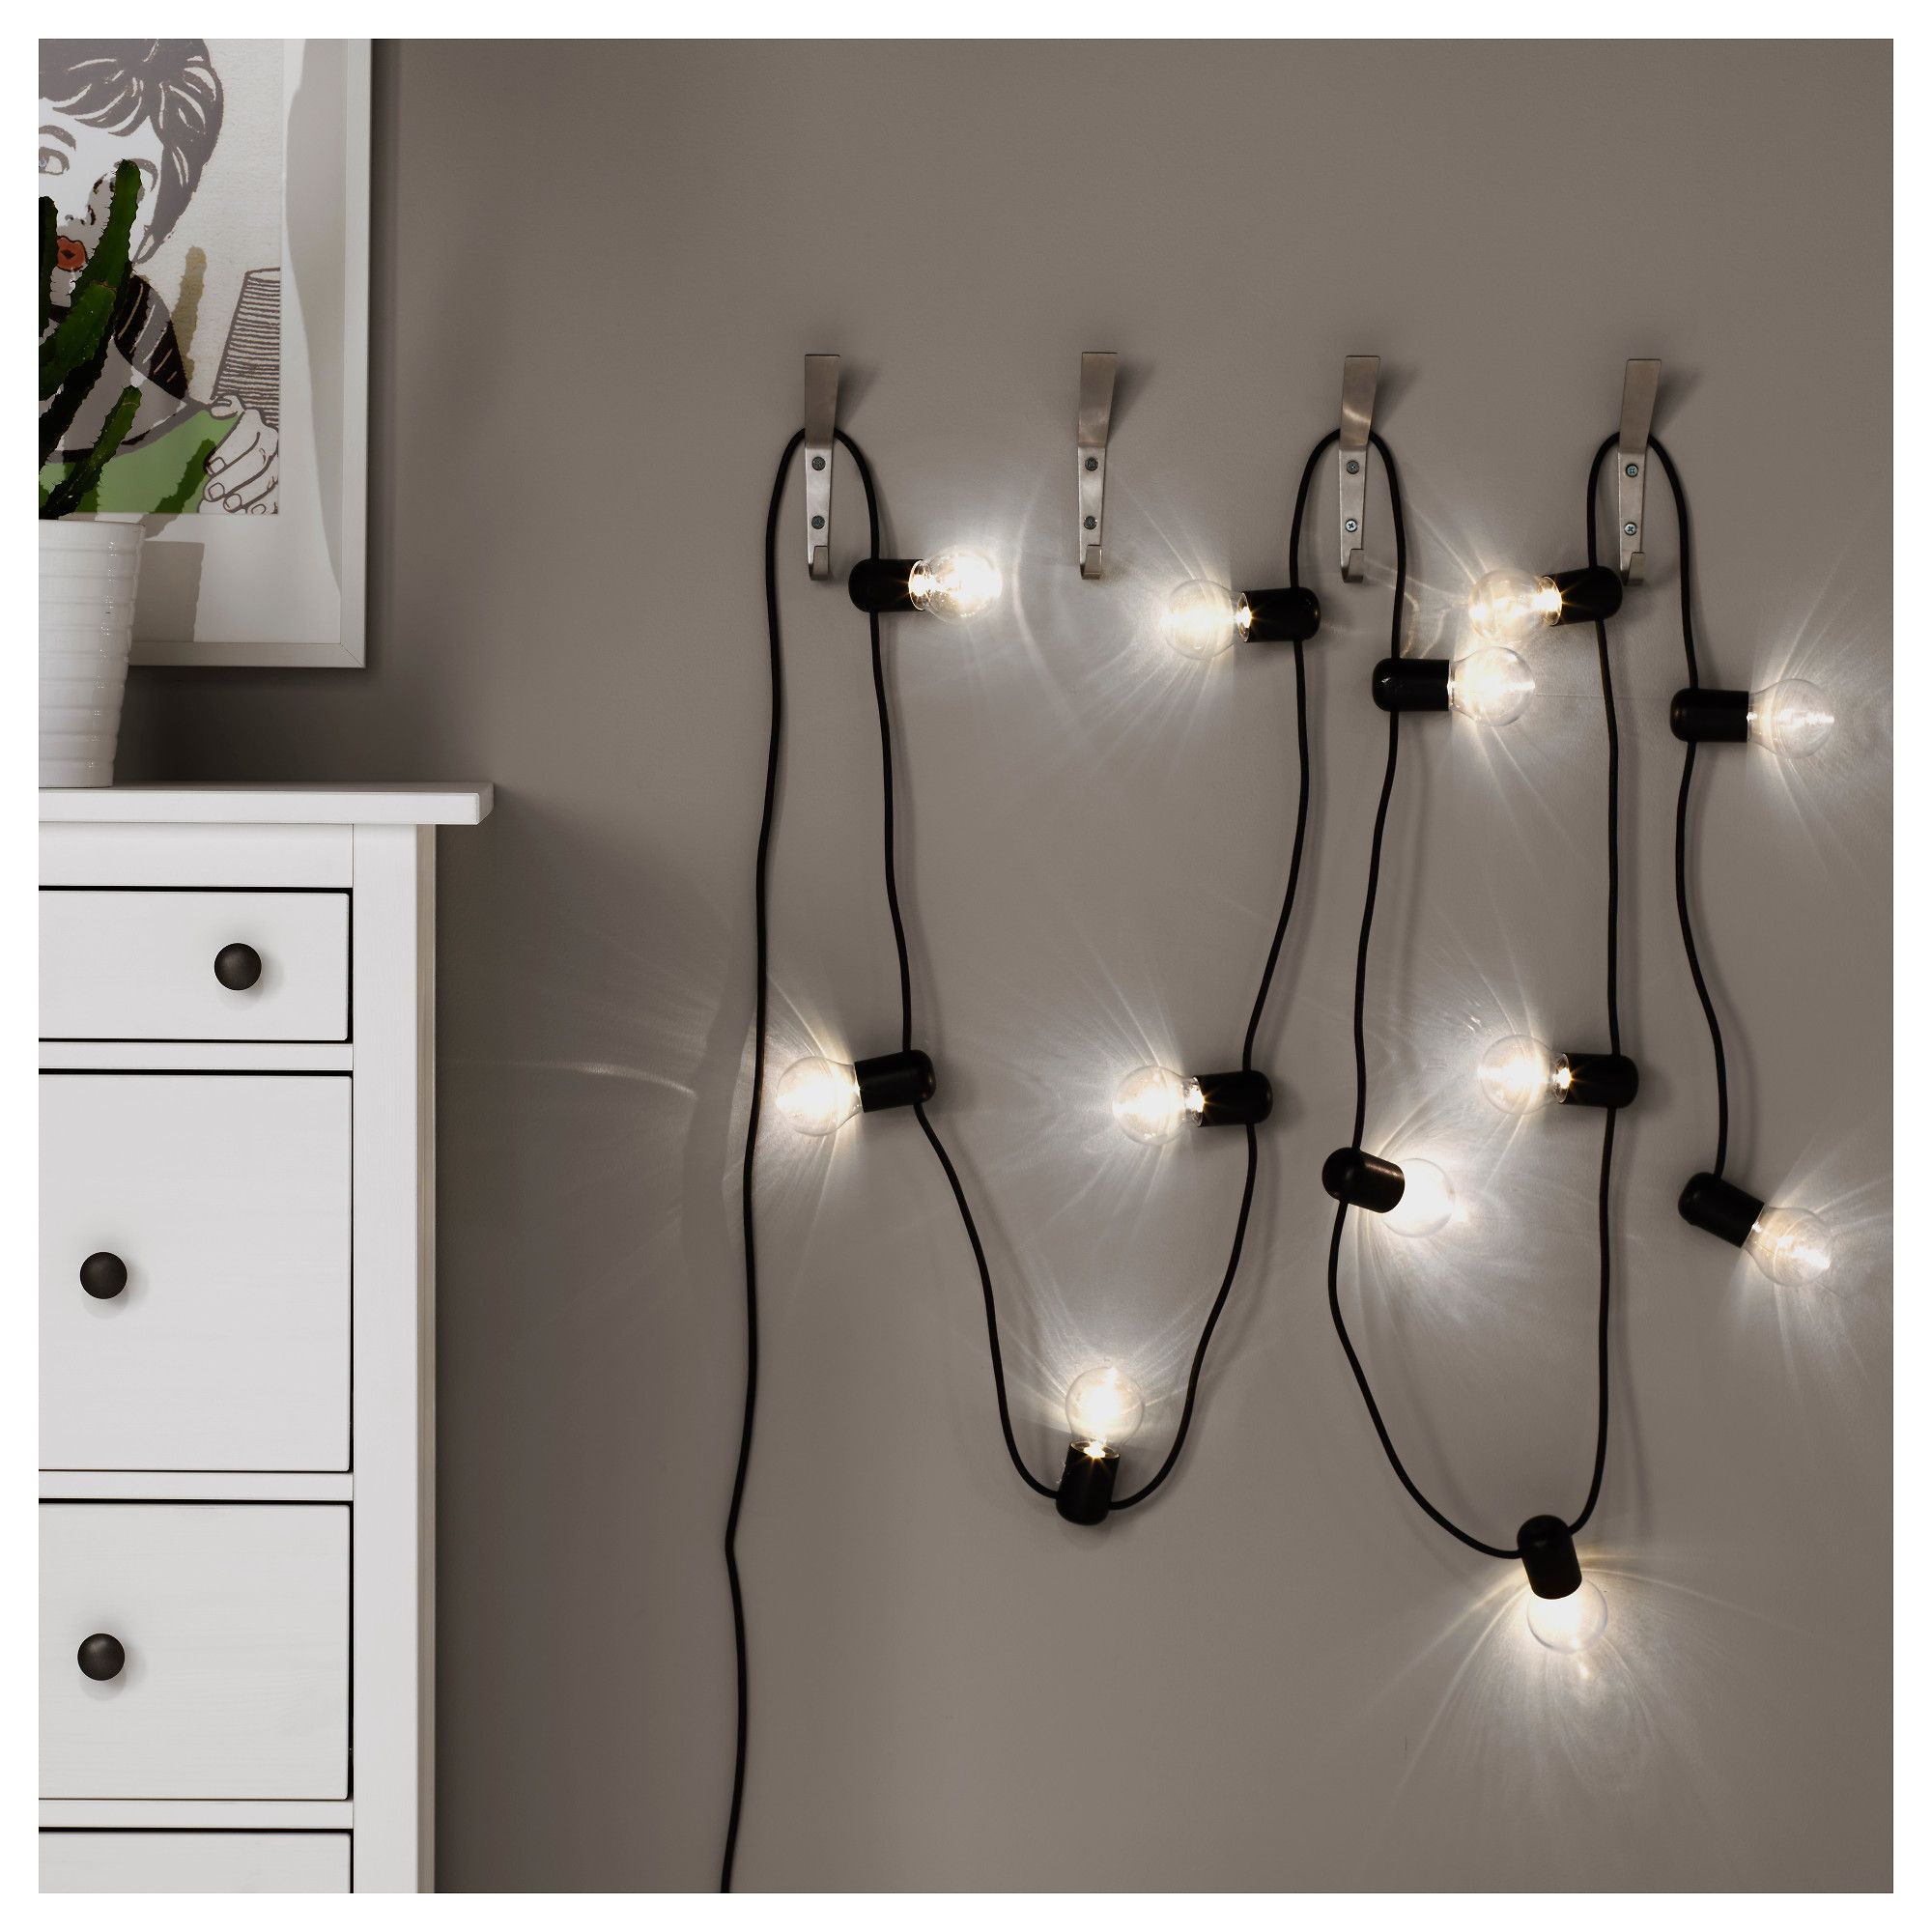 svartrÅ led string light with 12 lights, black, outdoor in 2018